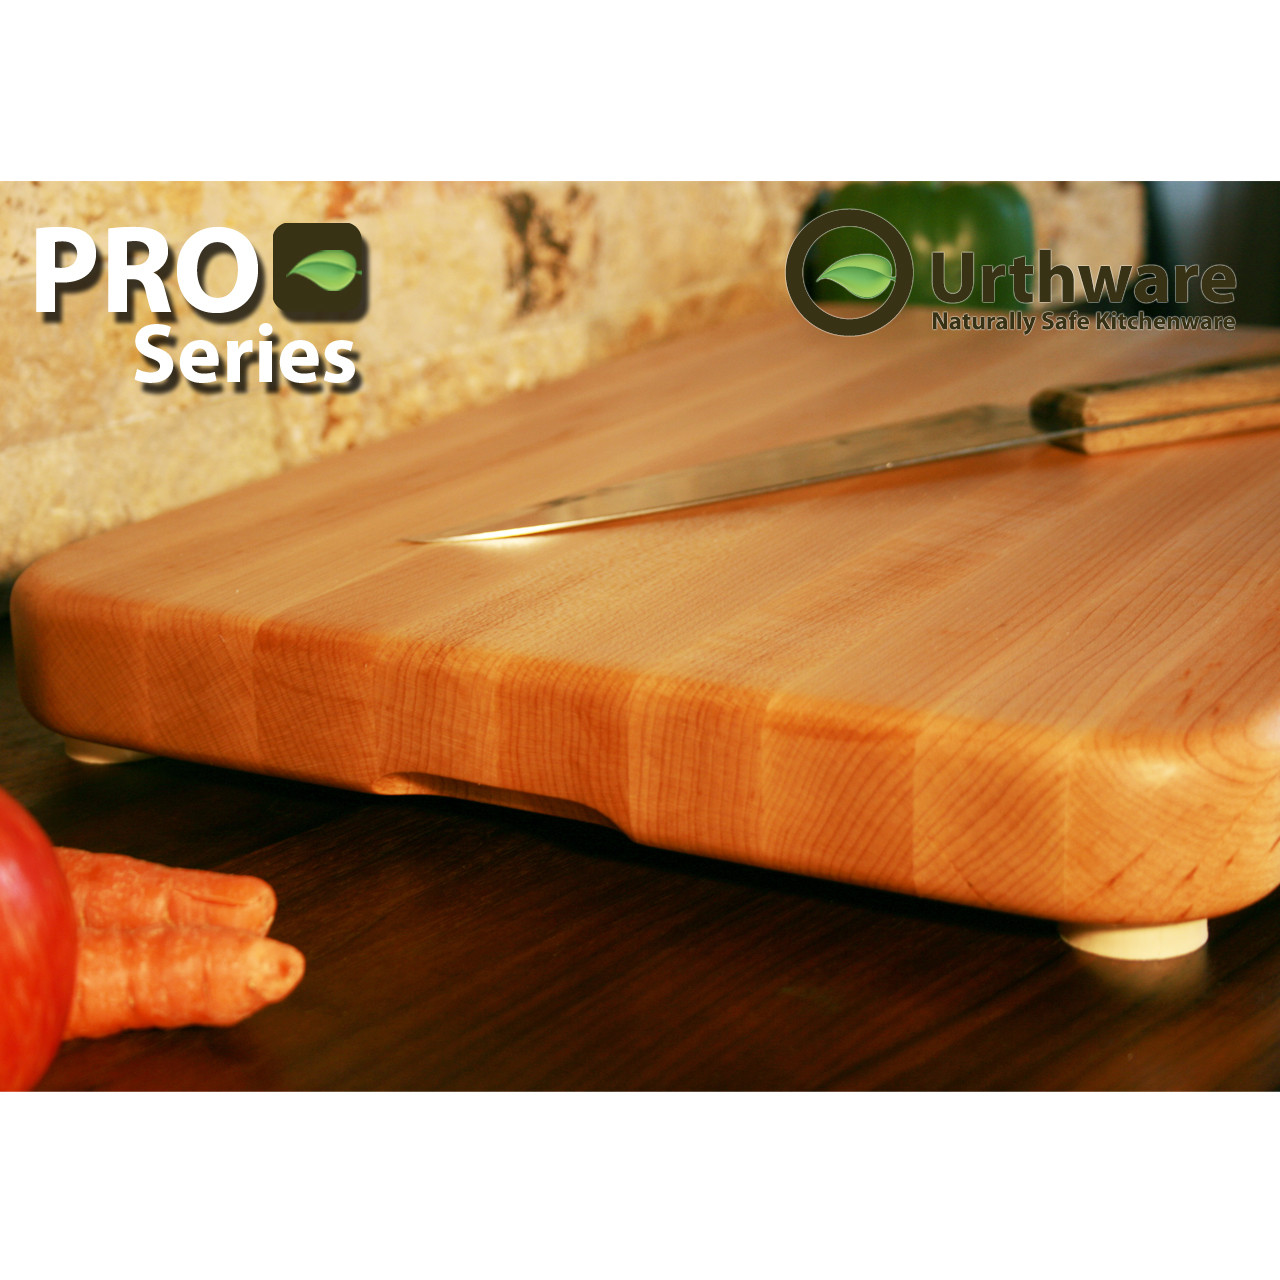 d61d9c3a3f6 Urthware Pro Series XL Canadian Hard Maple cutting board using only organic  natural finishes